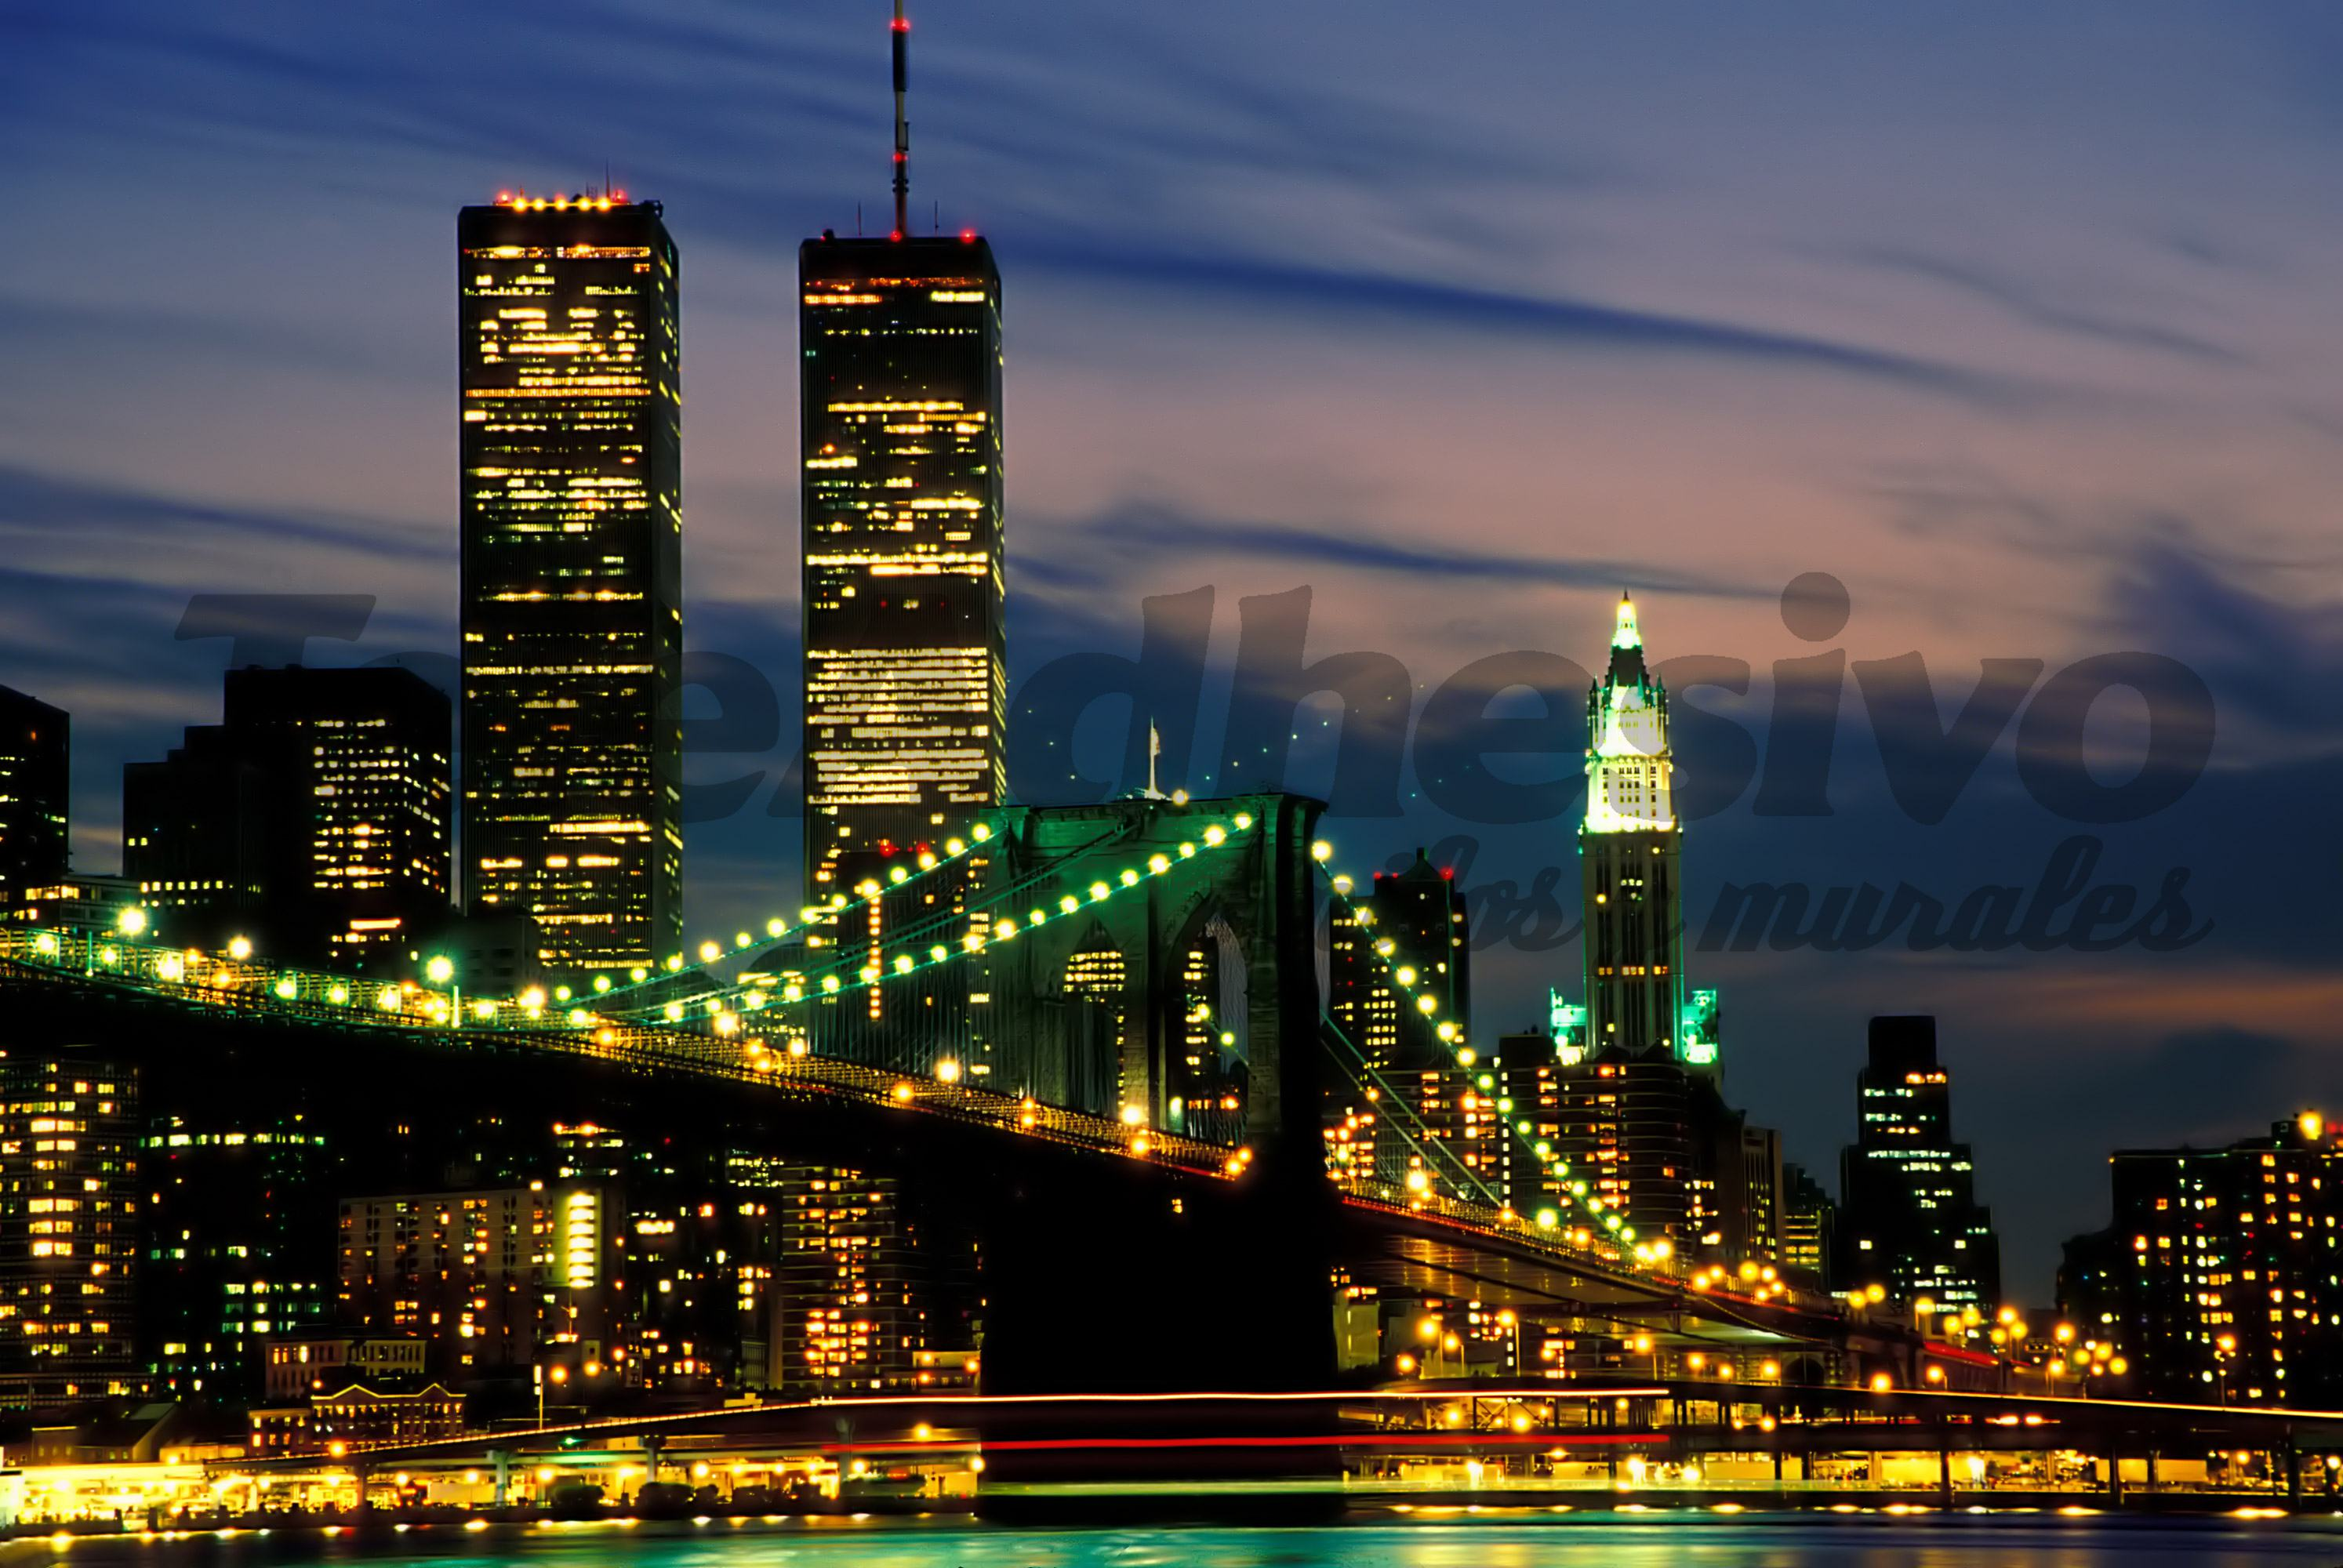 Fototapeten: New York WTC